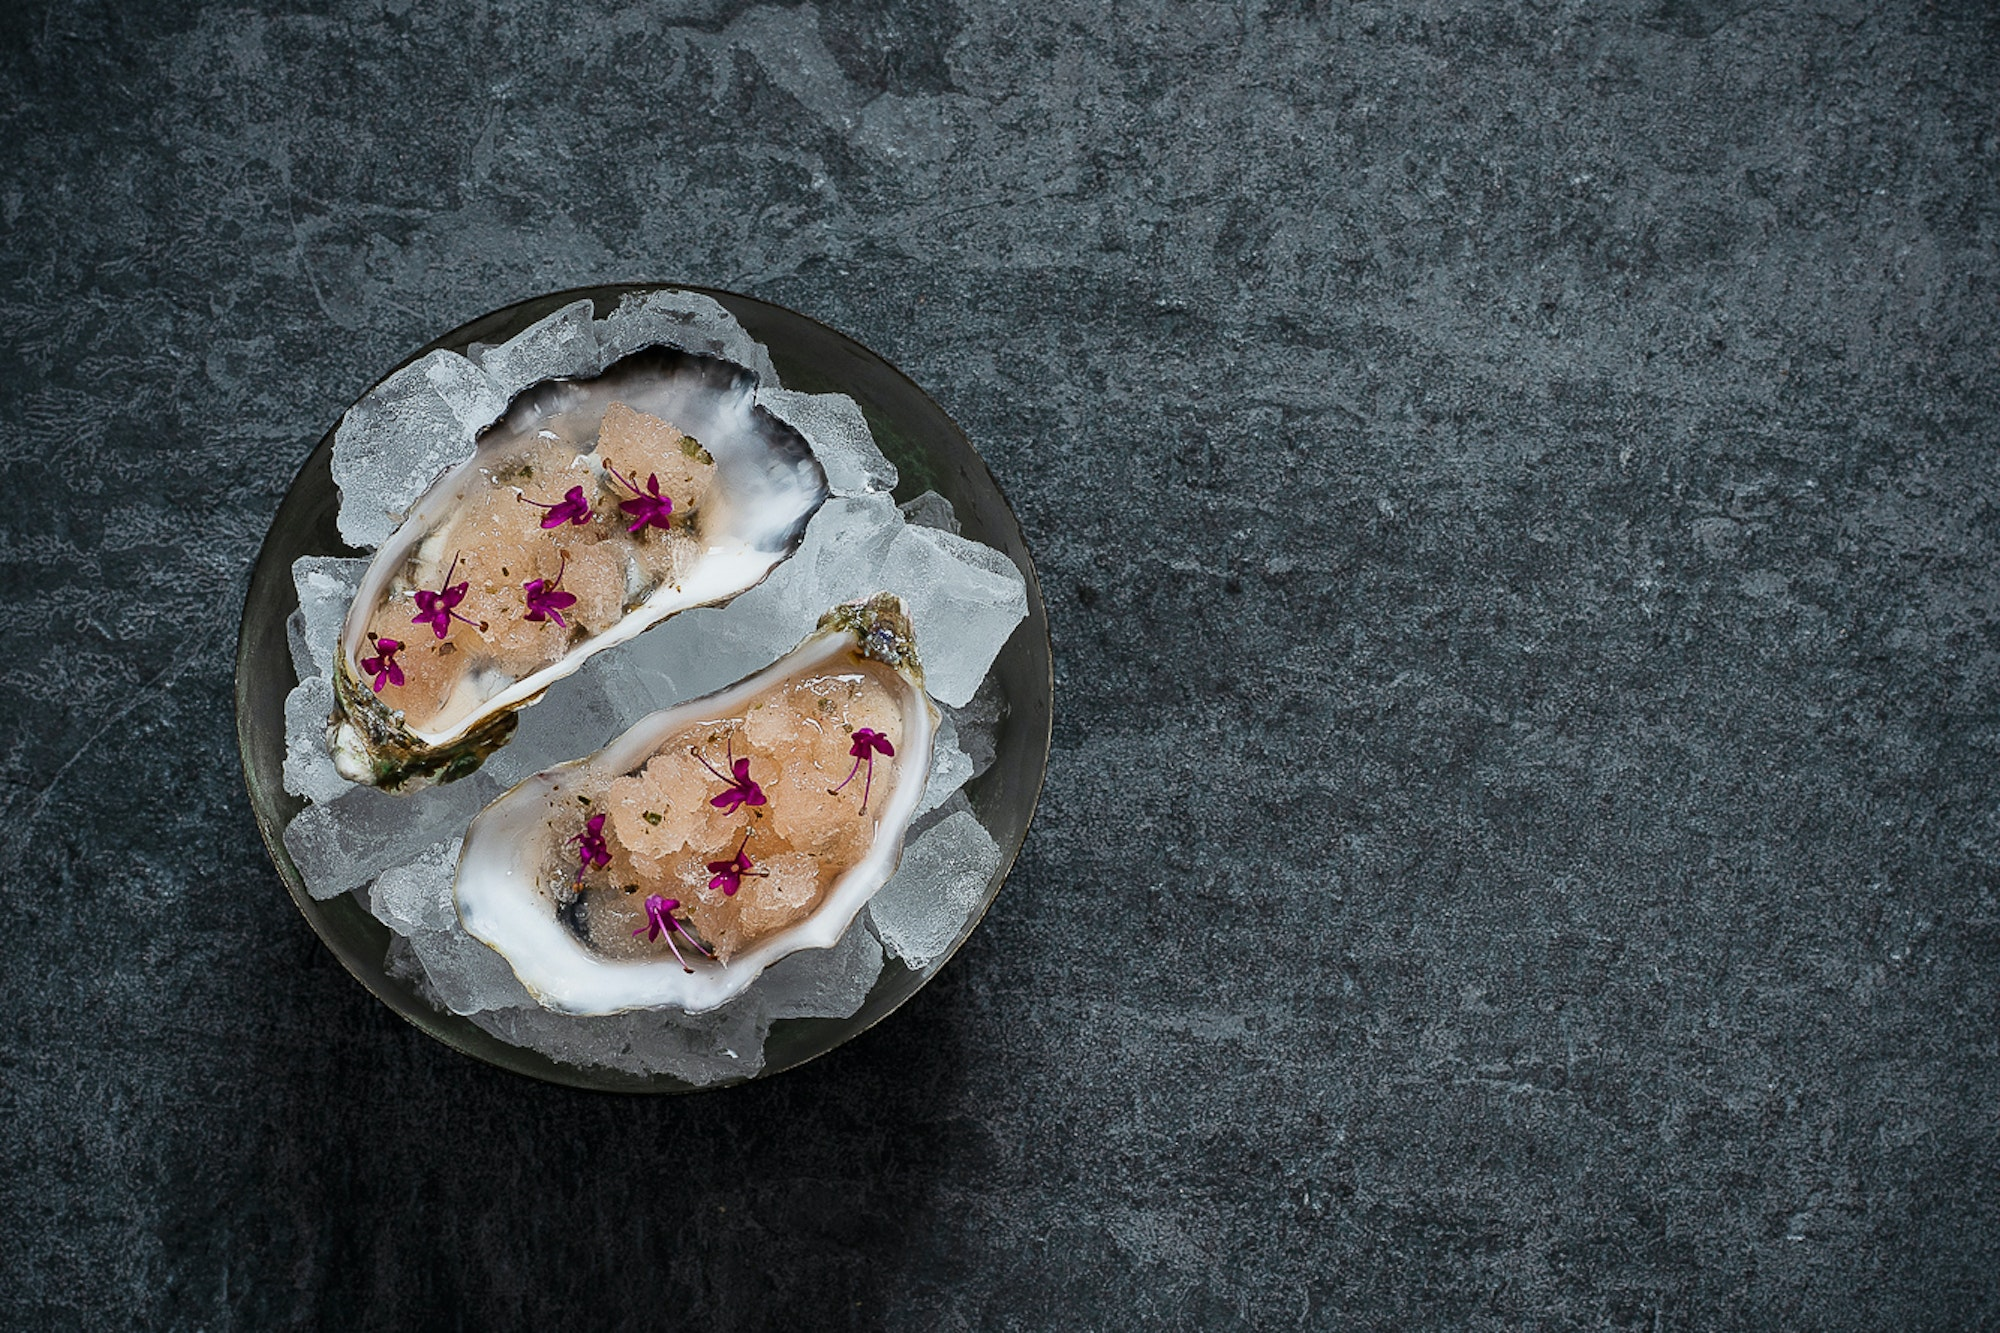 Fresh seafood, like this Kaipara Oyster, is a staple of Māori cuisine. At Hiakai, the oysters are served with a mignonette made with horopito, or pepperwood, flowers.